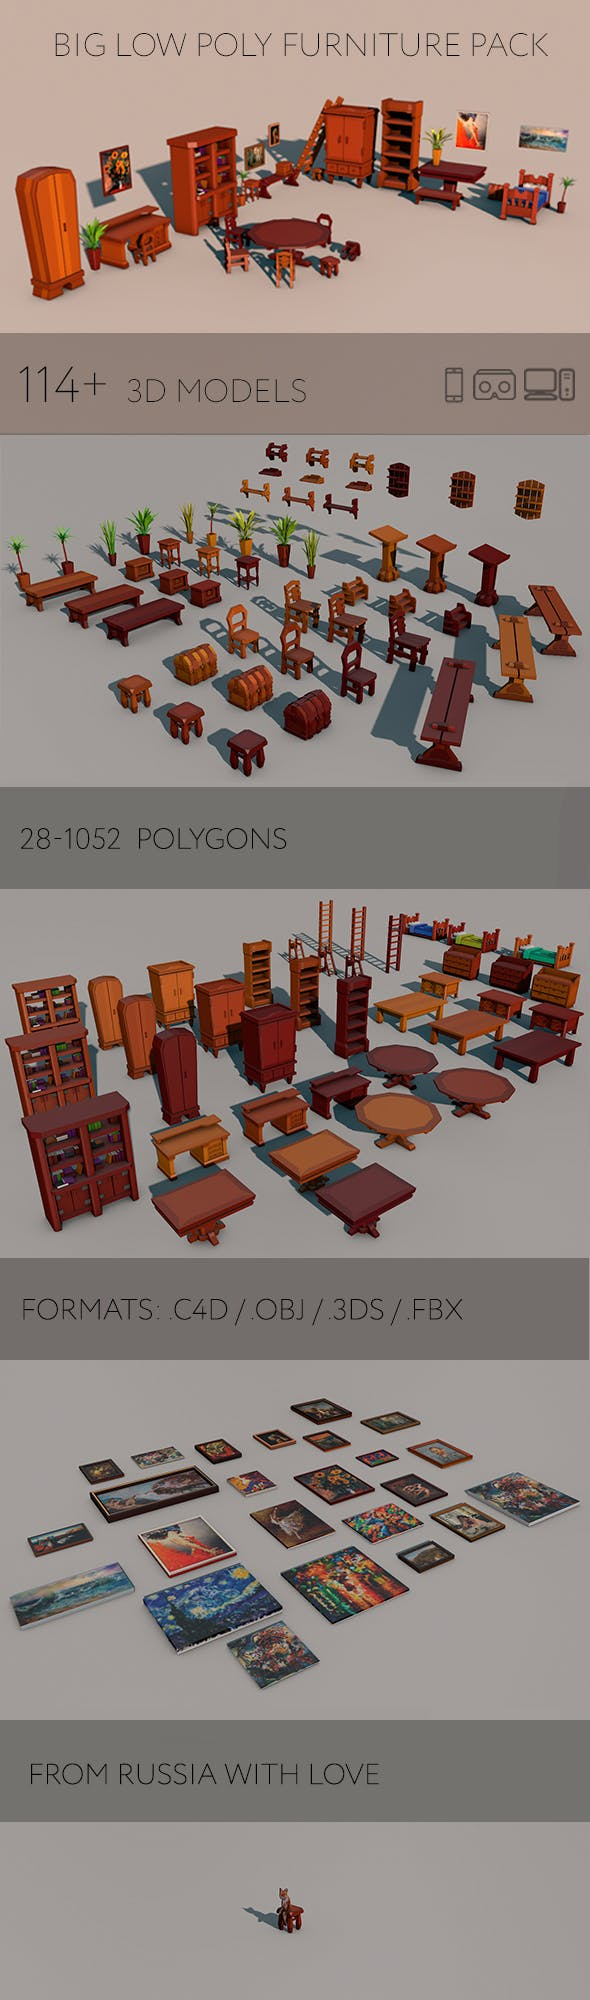 Big low poly furniture pack - 3DOcean Item for Sale